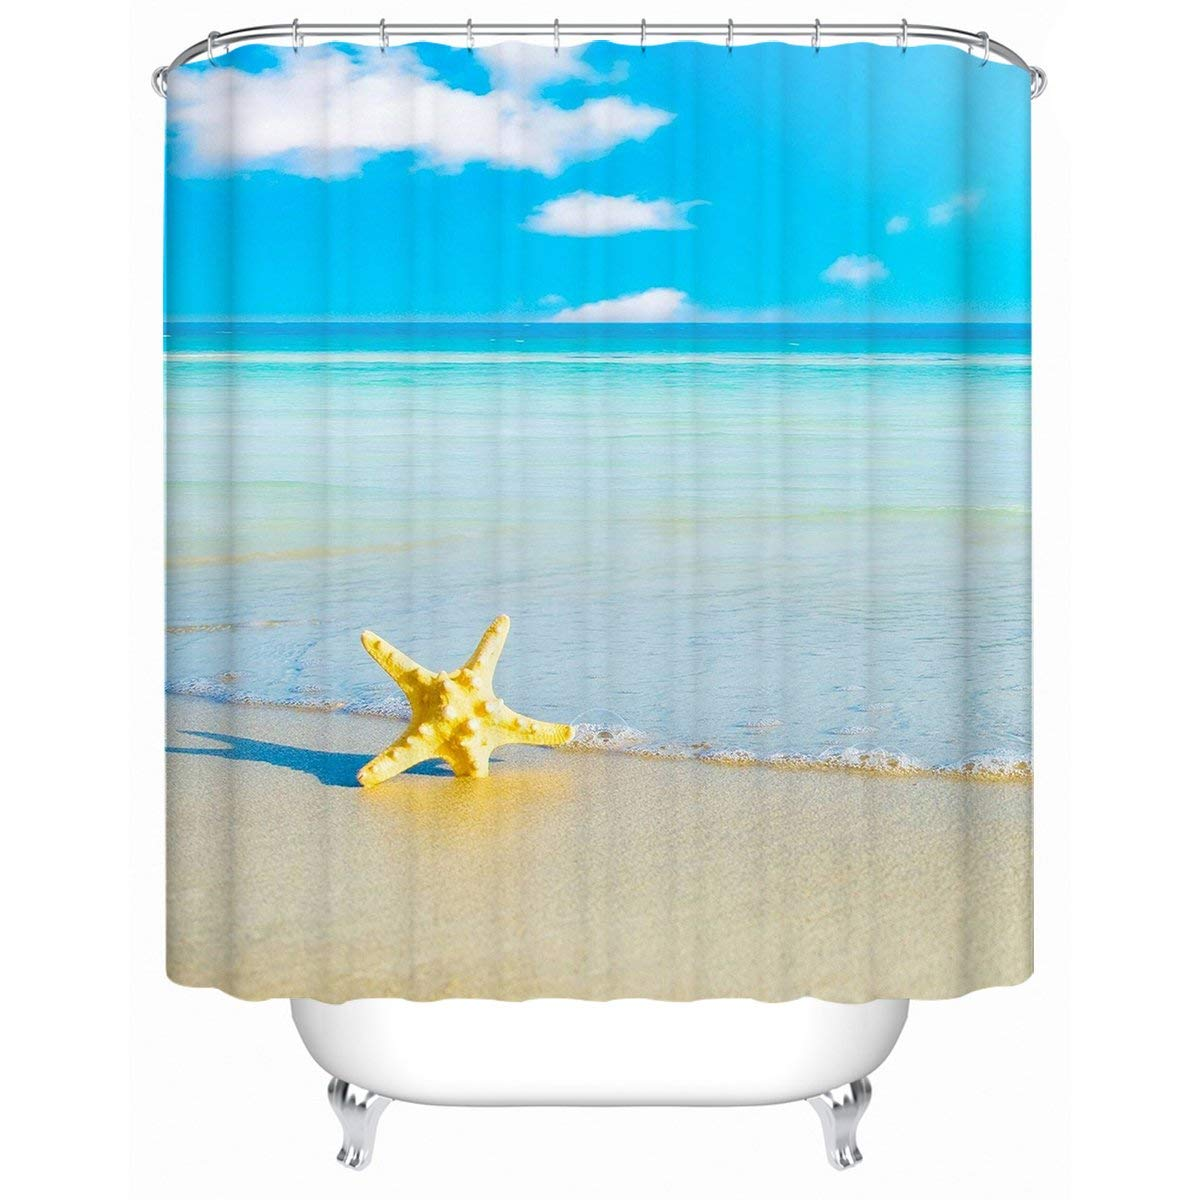 Get Quotations Sleepwish Ocean Scene Shower Curtain Seawater Sand Starfish Bathroom Accessories Beach Theme Curtains Sky